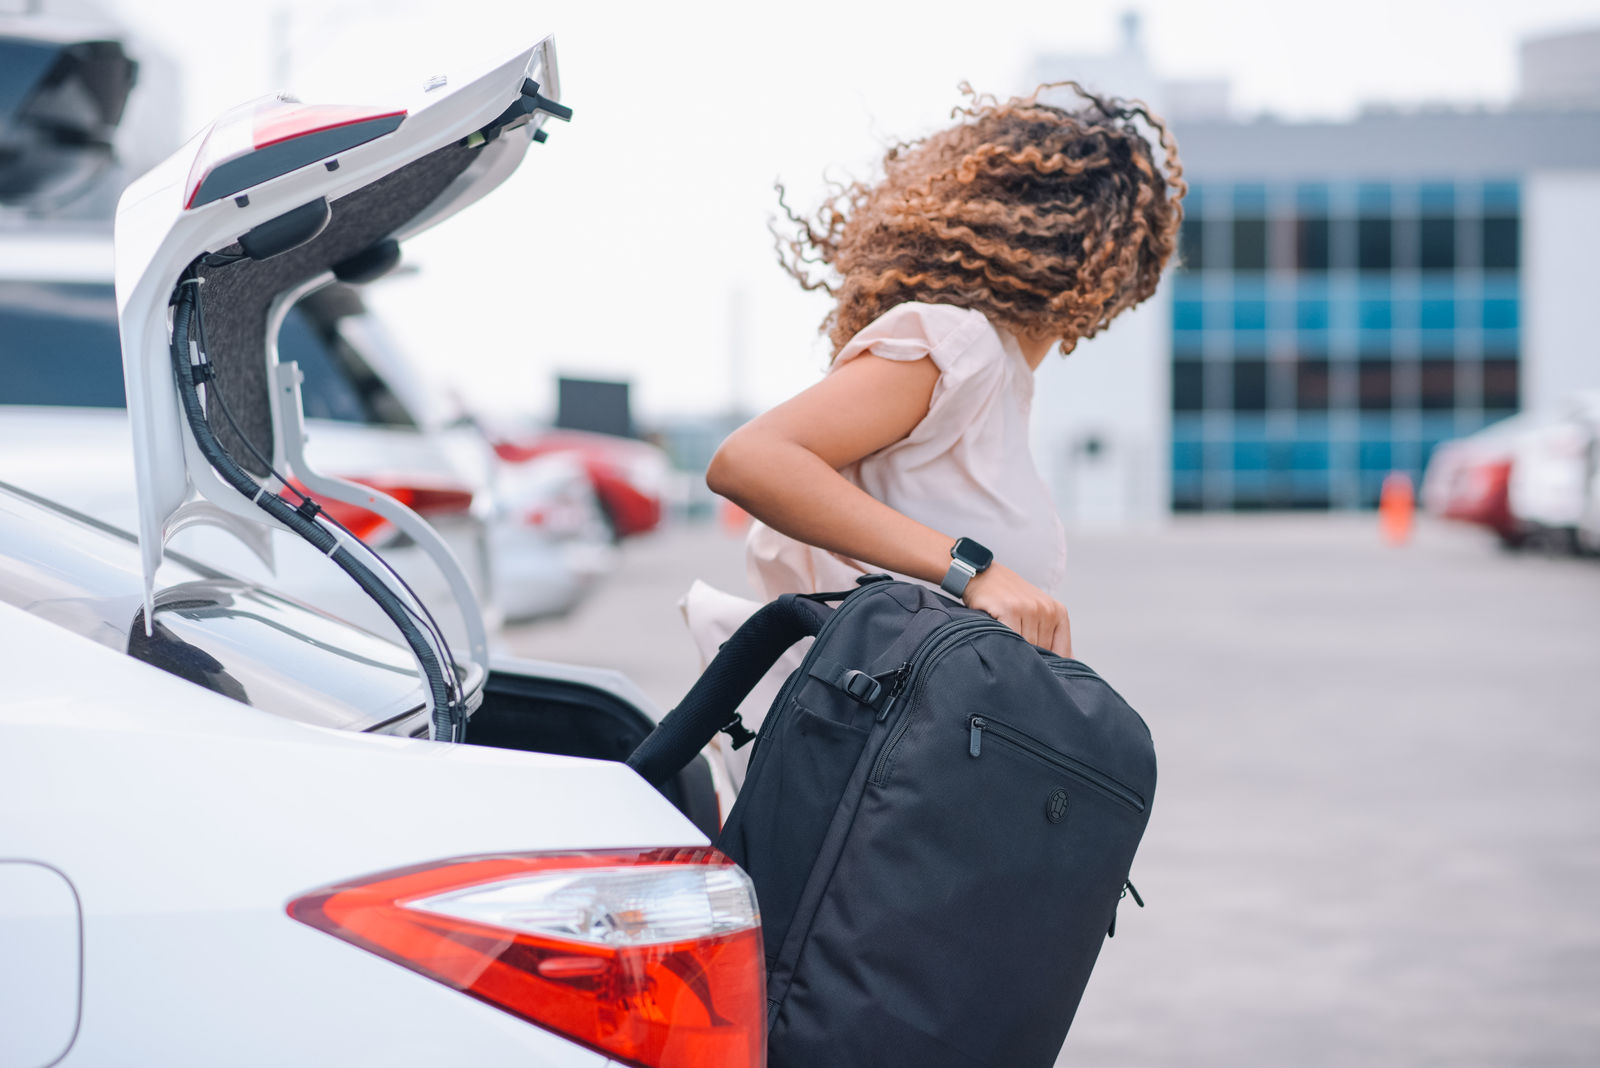 Removing backpack from trunk of car